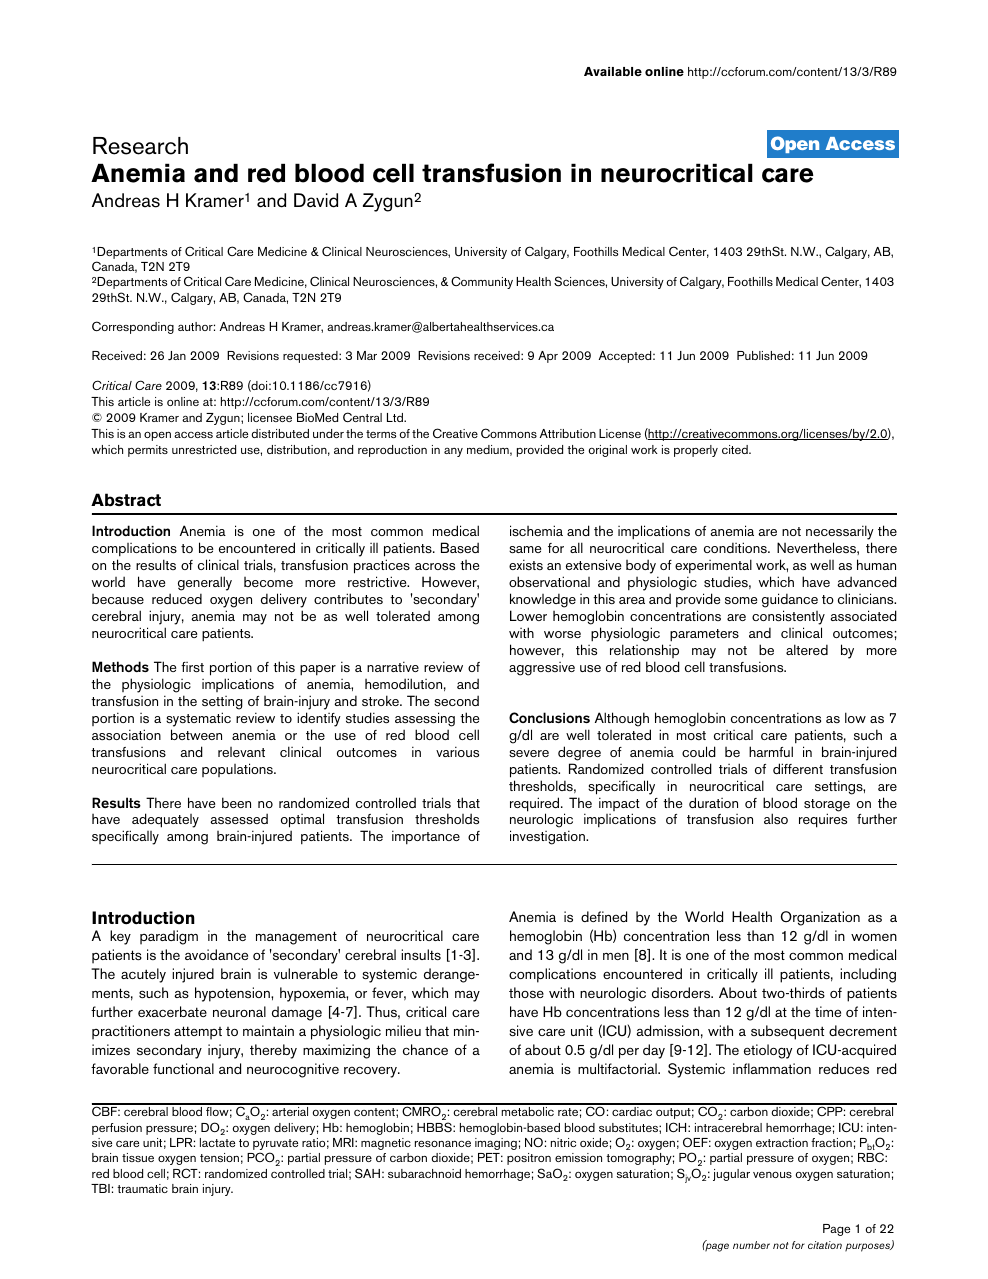 Anemia and red blood cell transfusion in neurocritical care – topic